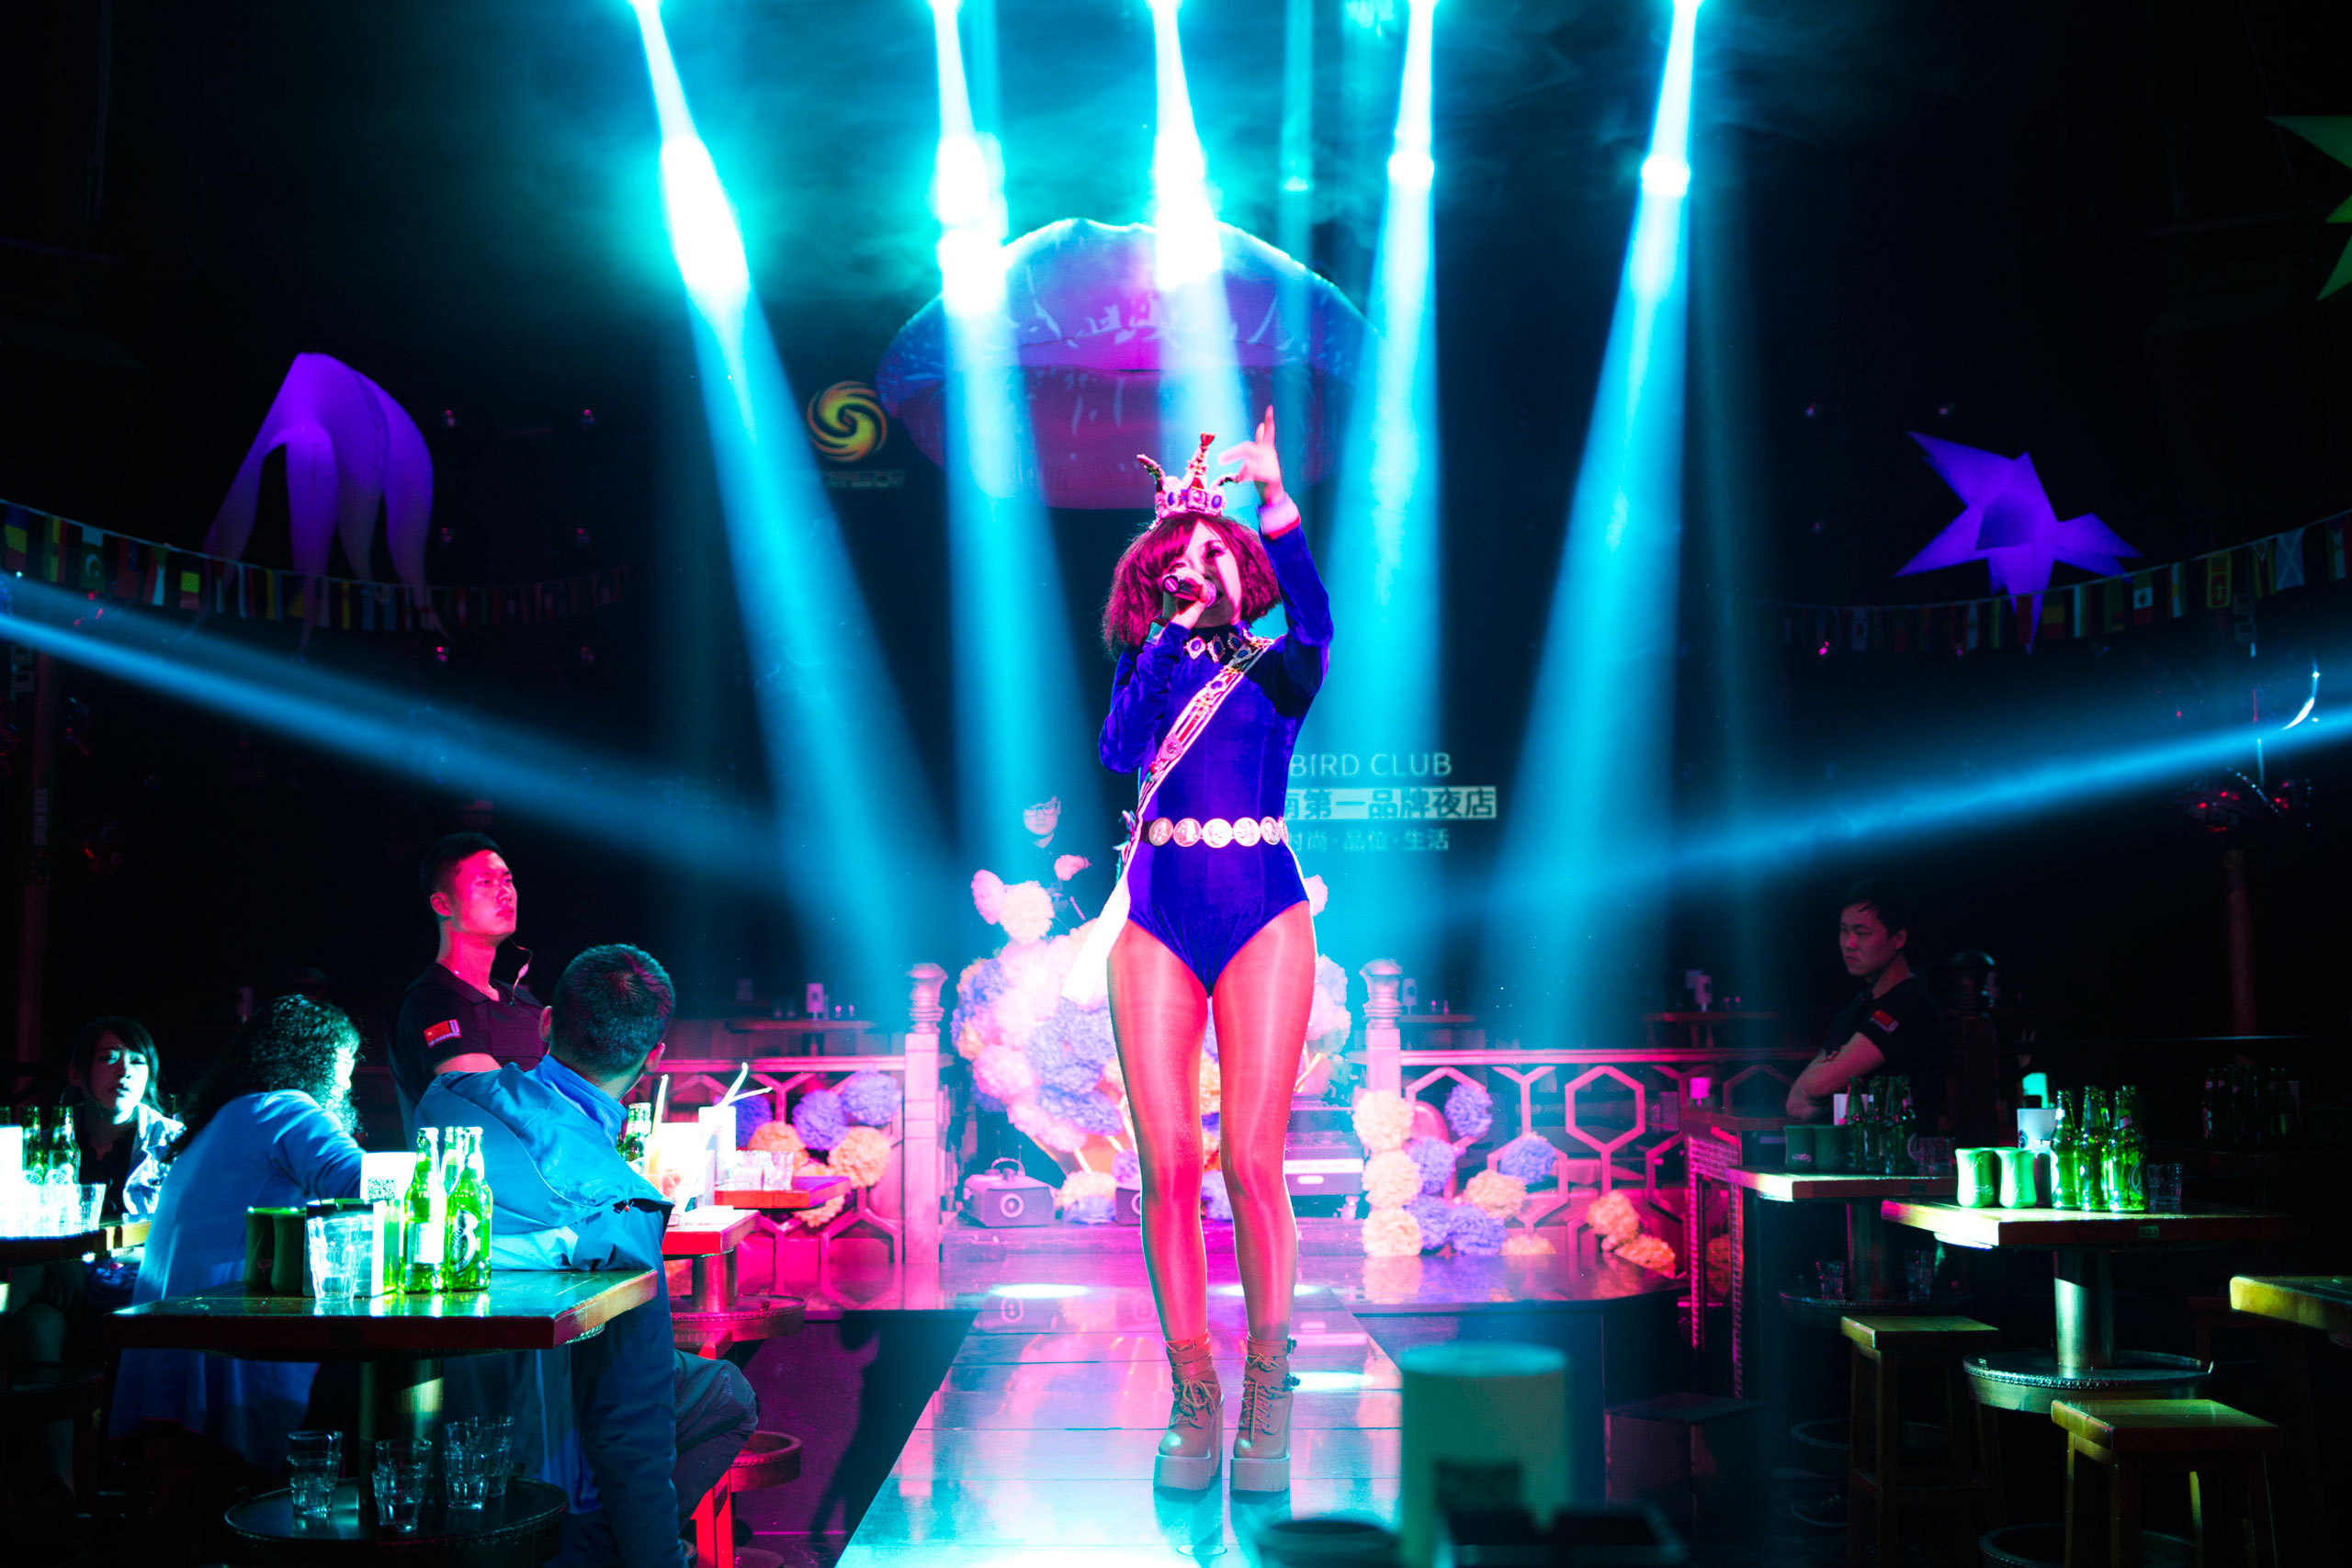 A singer performs in a night club in Kunming, China's southern Yunnan province, Feb. 22, 2015. Club owners there often hire singers and dancers to entertain the customers.